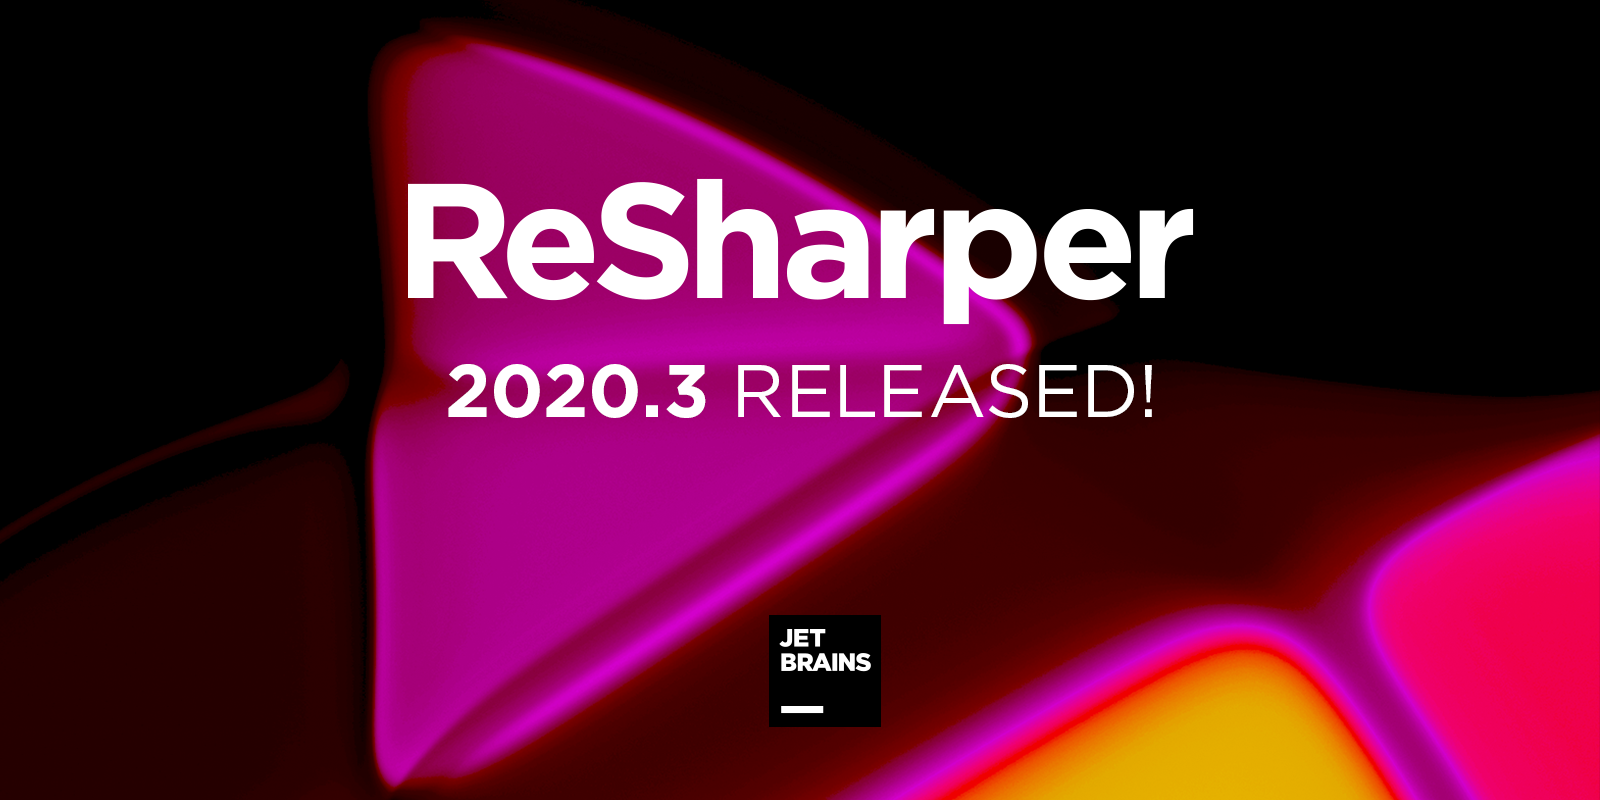 ReSharper 2020.3: Support for C# 9 and Source Generators, New Features in Inlay Hints, and Support for Avalonia UI